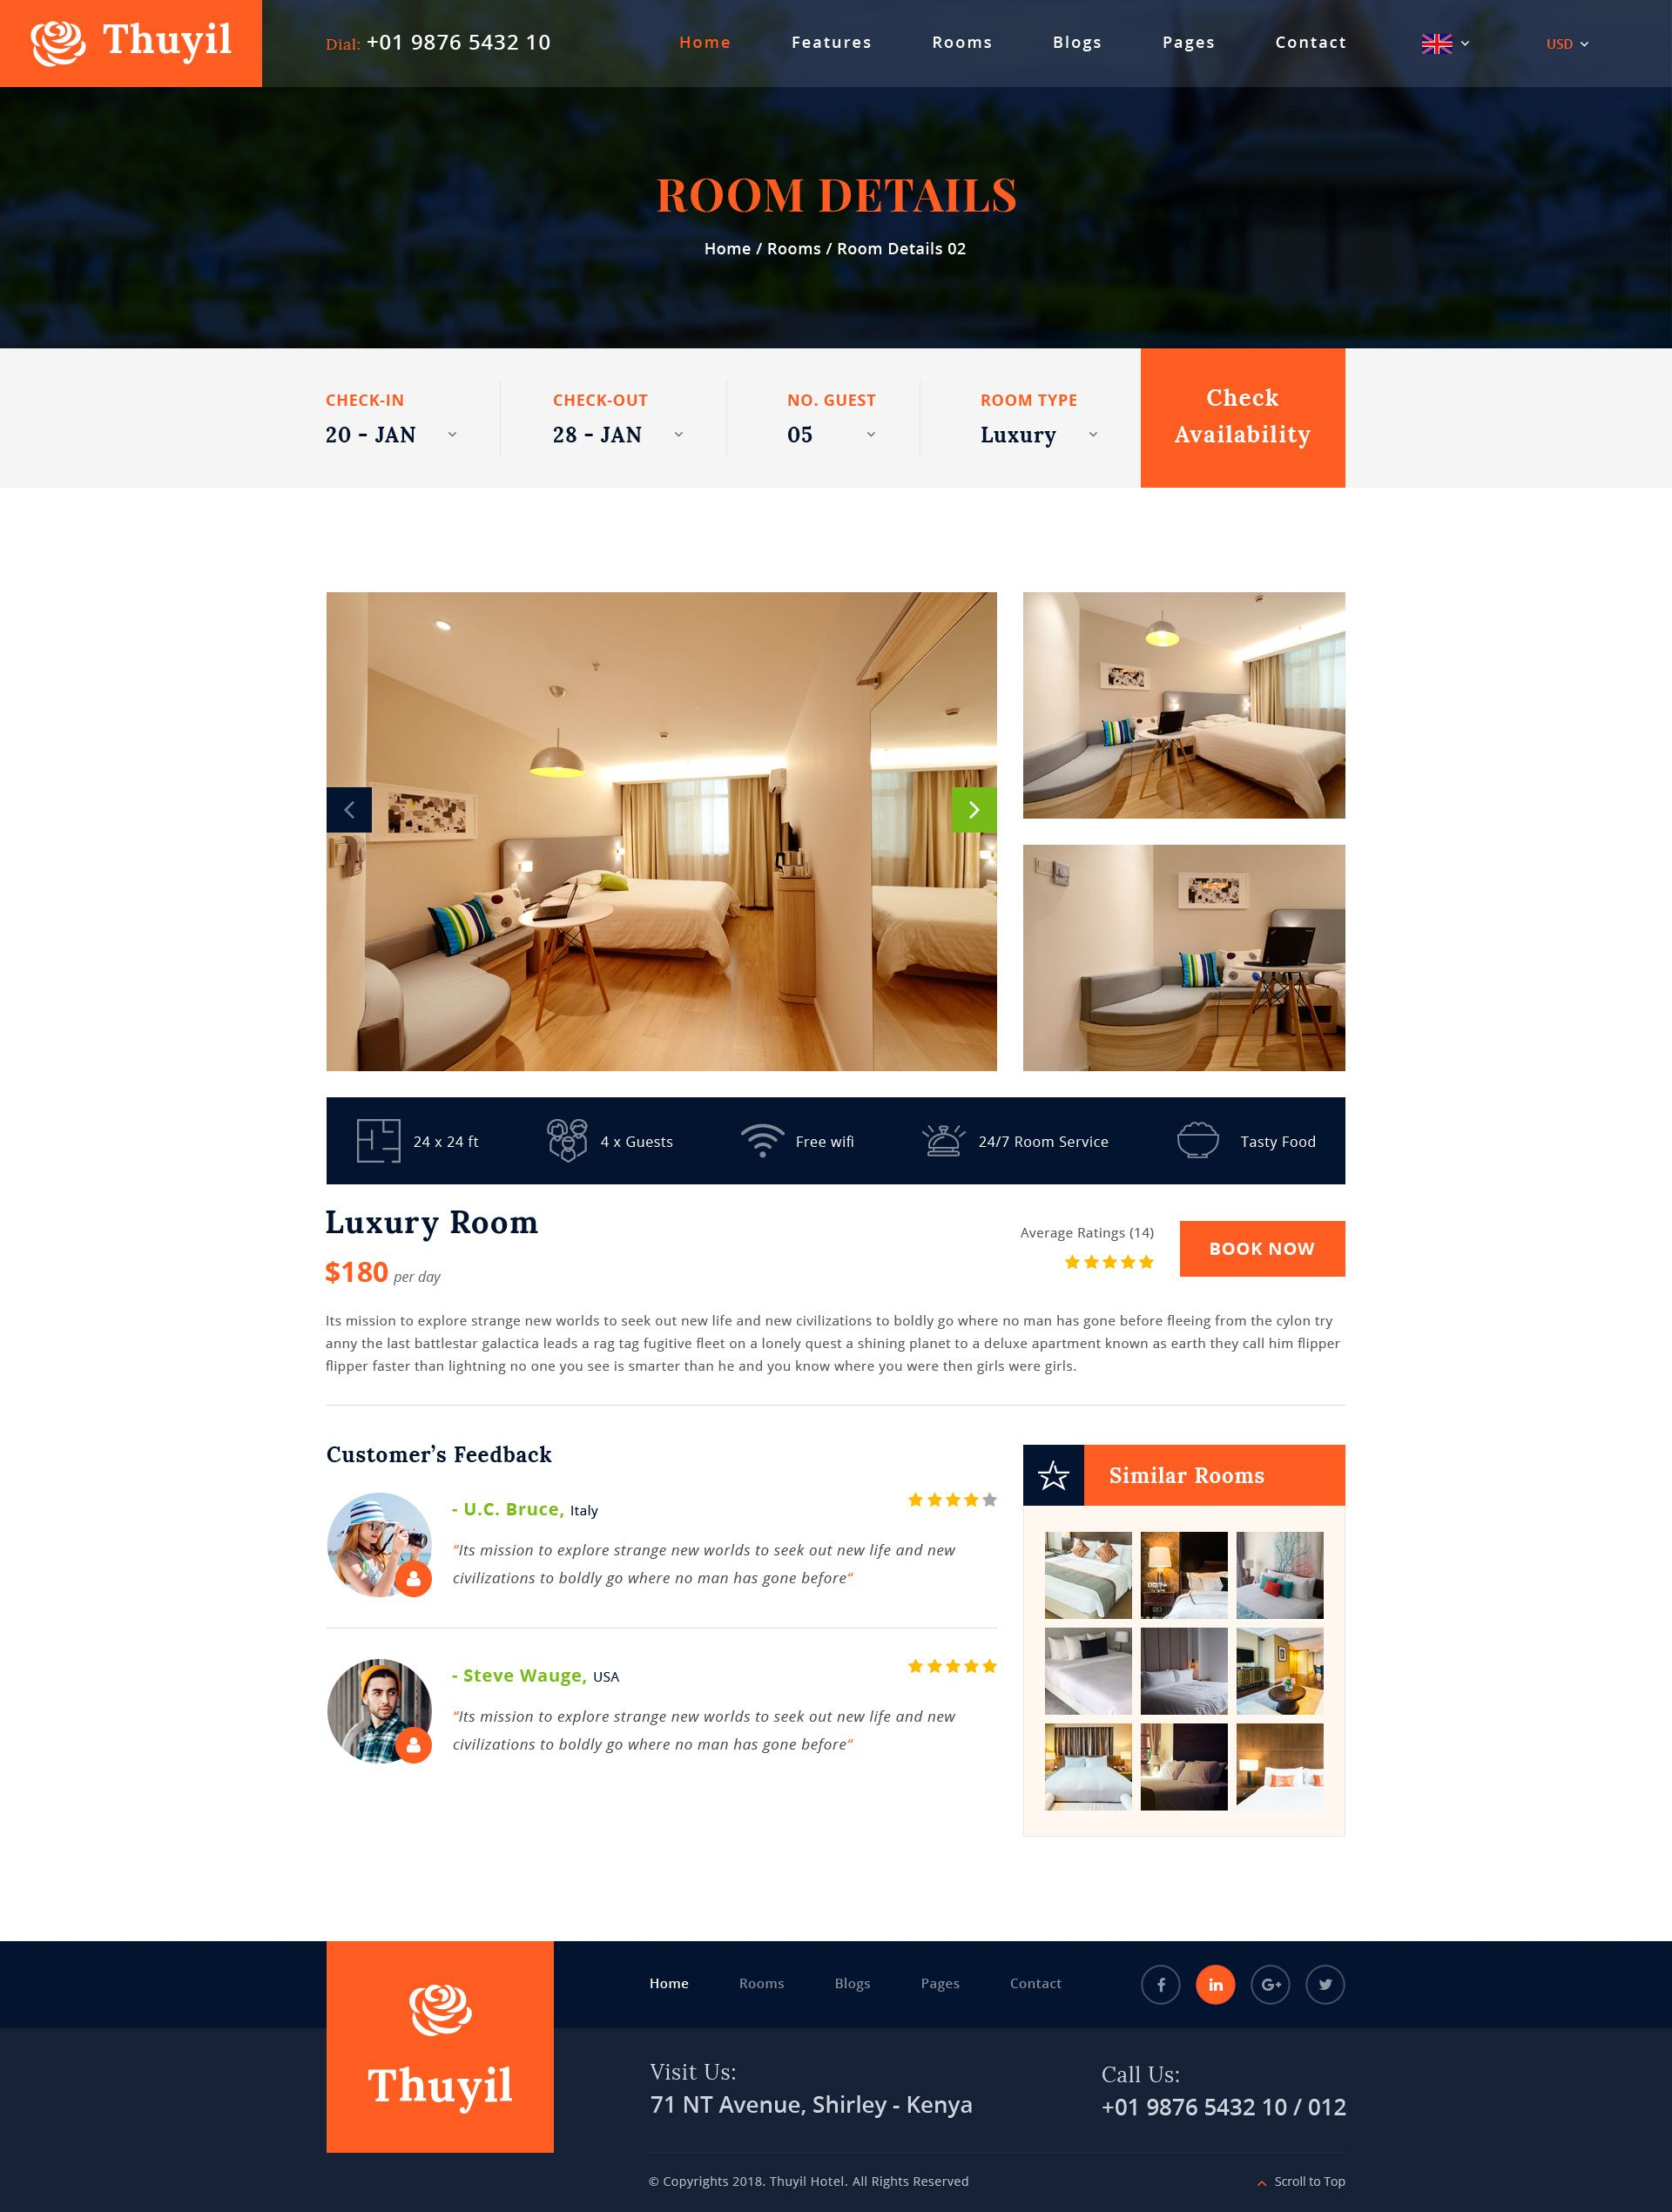 Thuyil Hotel And Resort Psd Web Template Hotels And Resorts